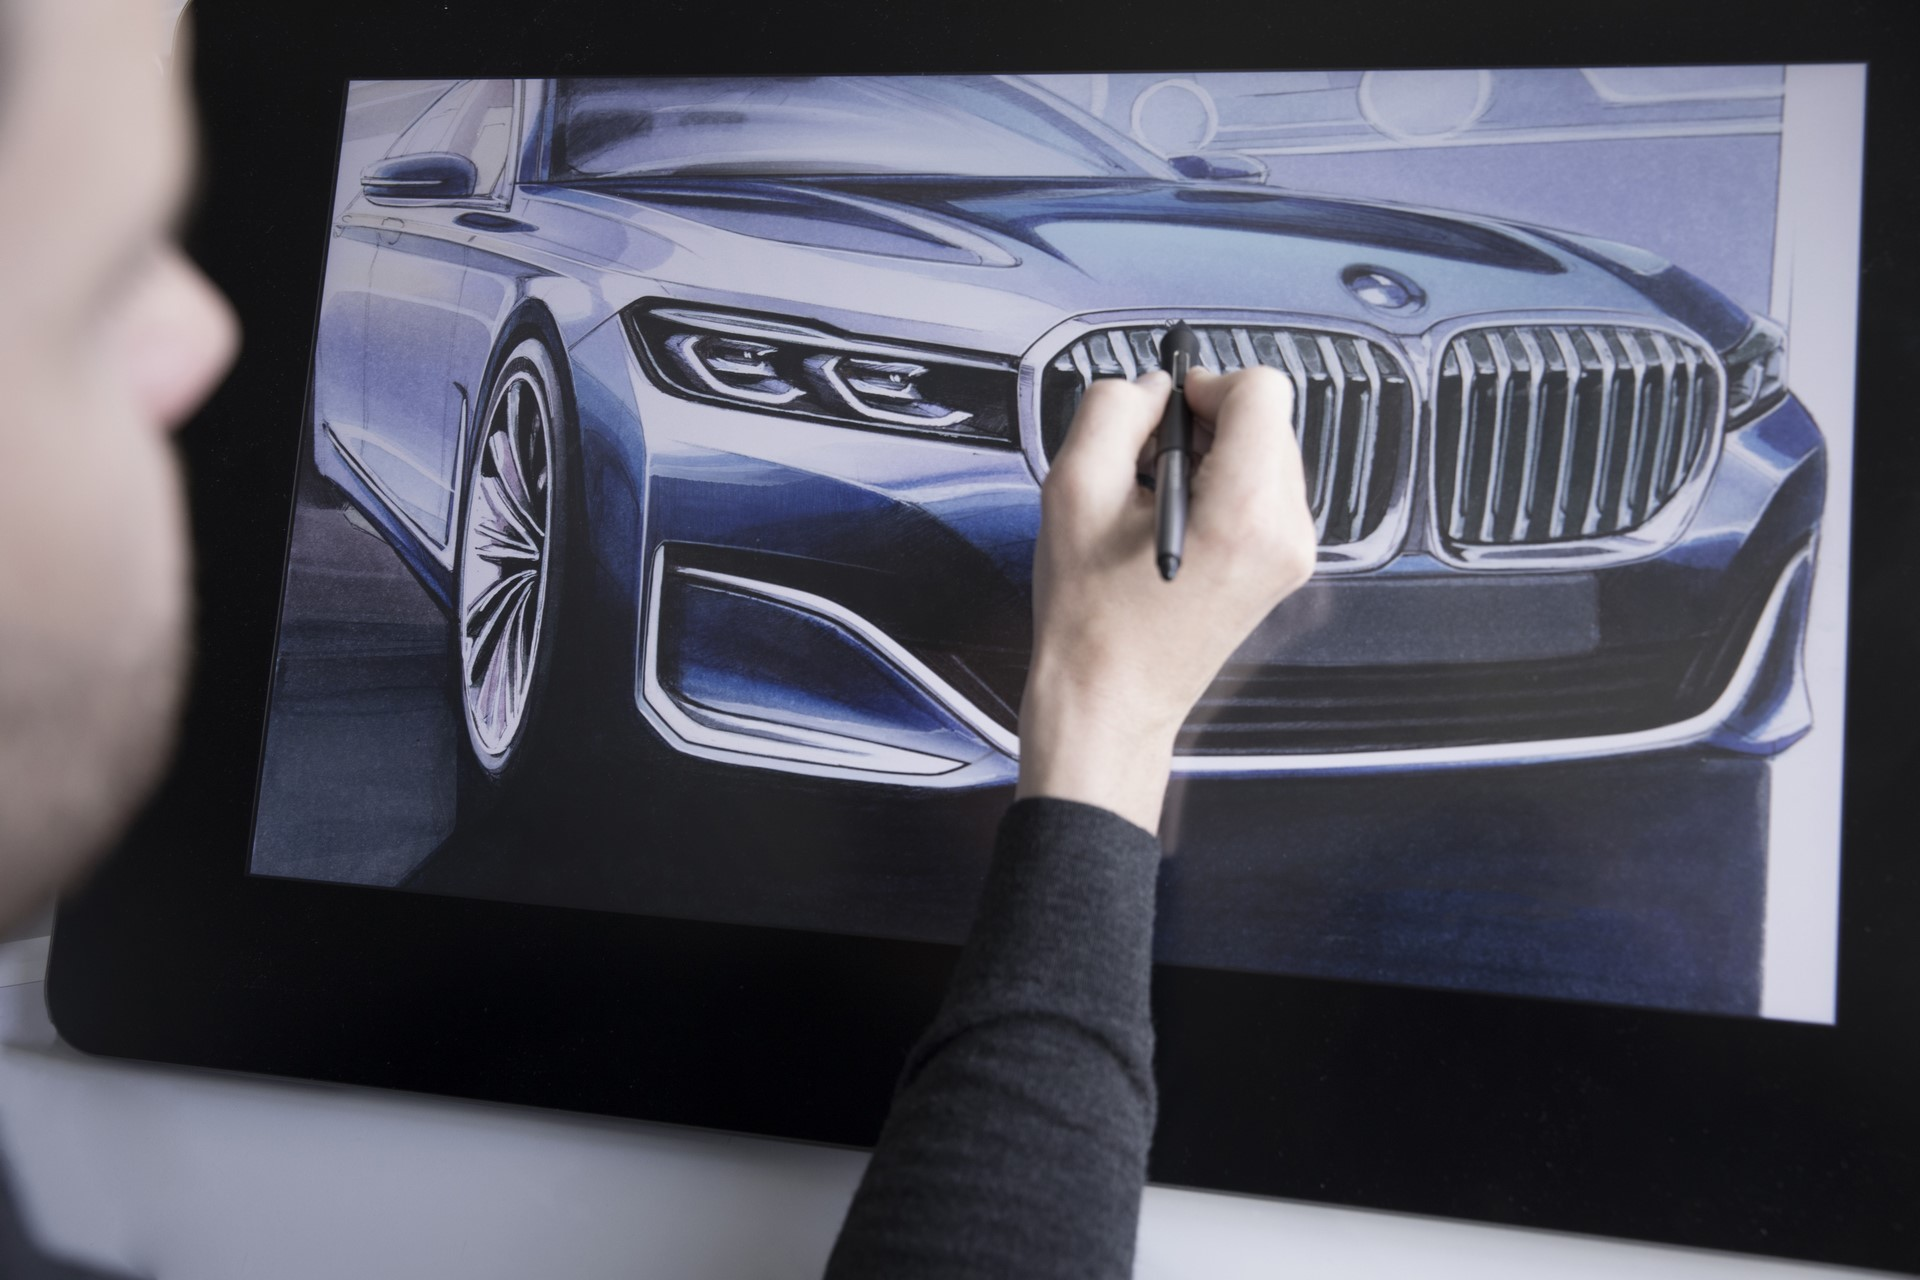 BMW 7-Series facelift 2019 (93)